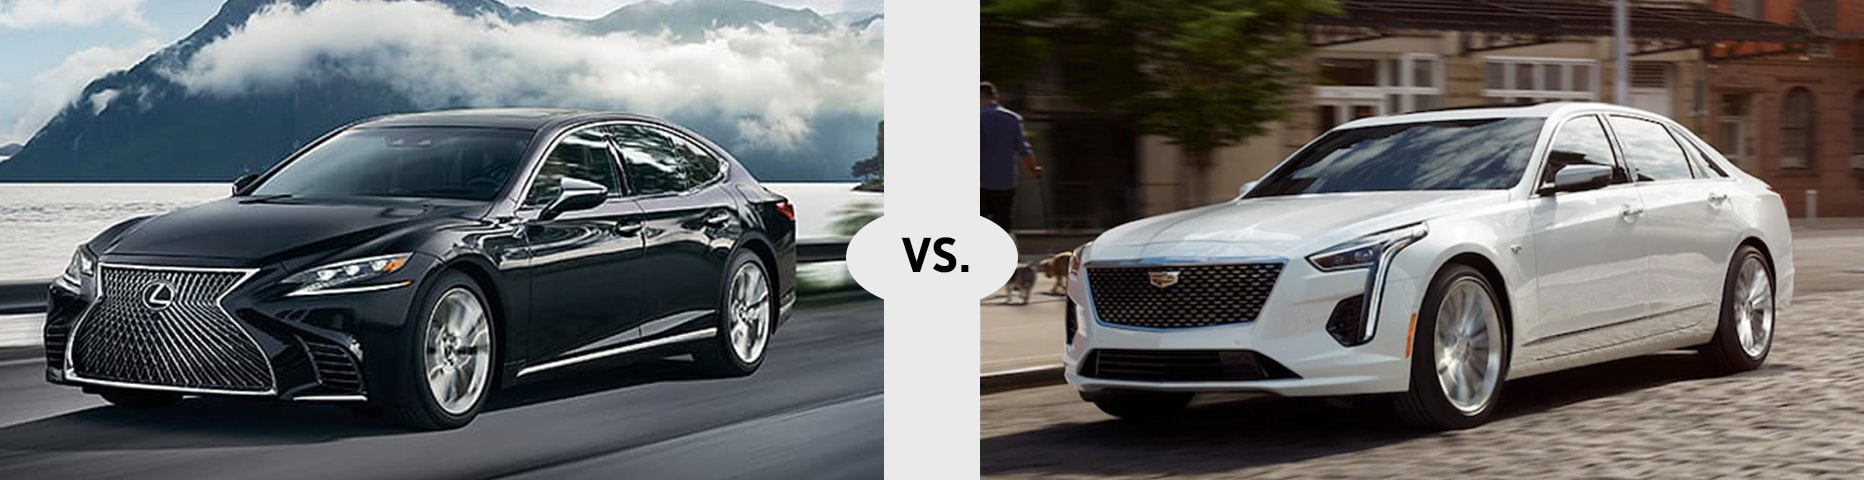 Lexus LS vs Cadillac CT6